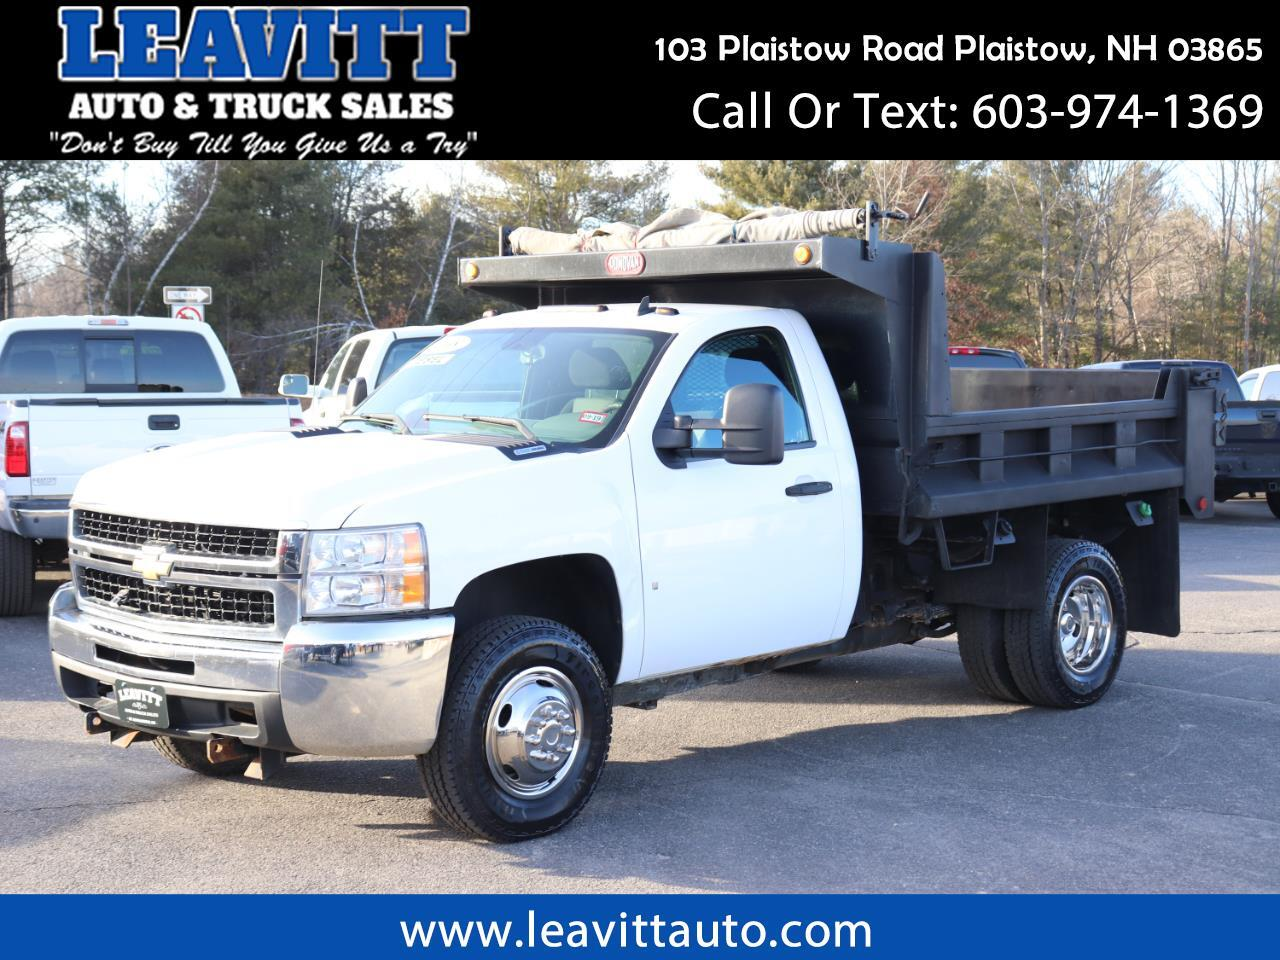 2008 Chevrolet Silverado 3500HD LT DUMP BODY 4X4